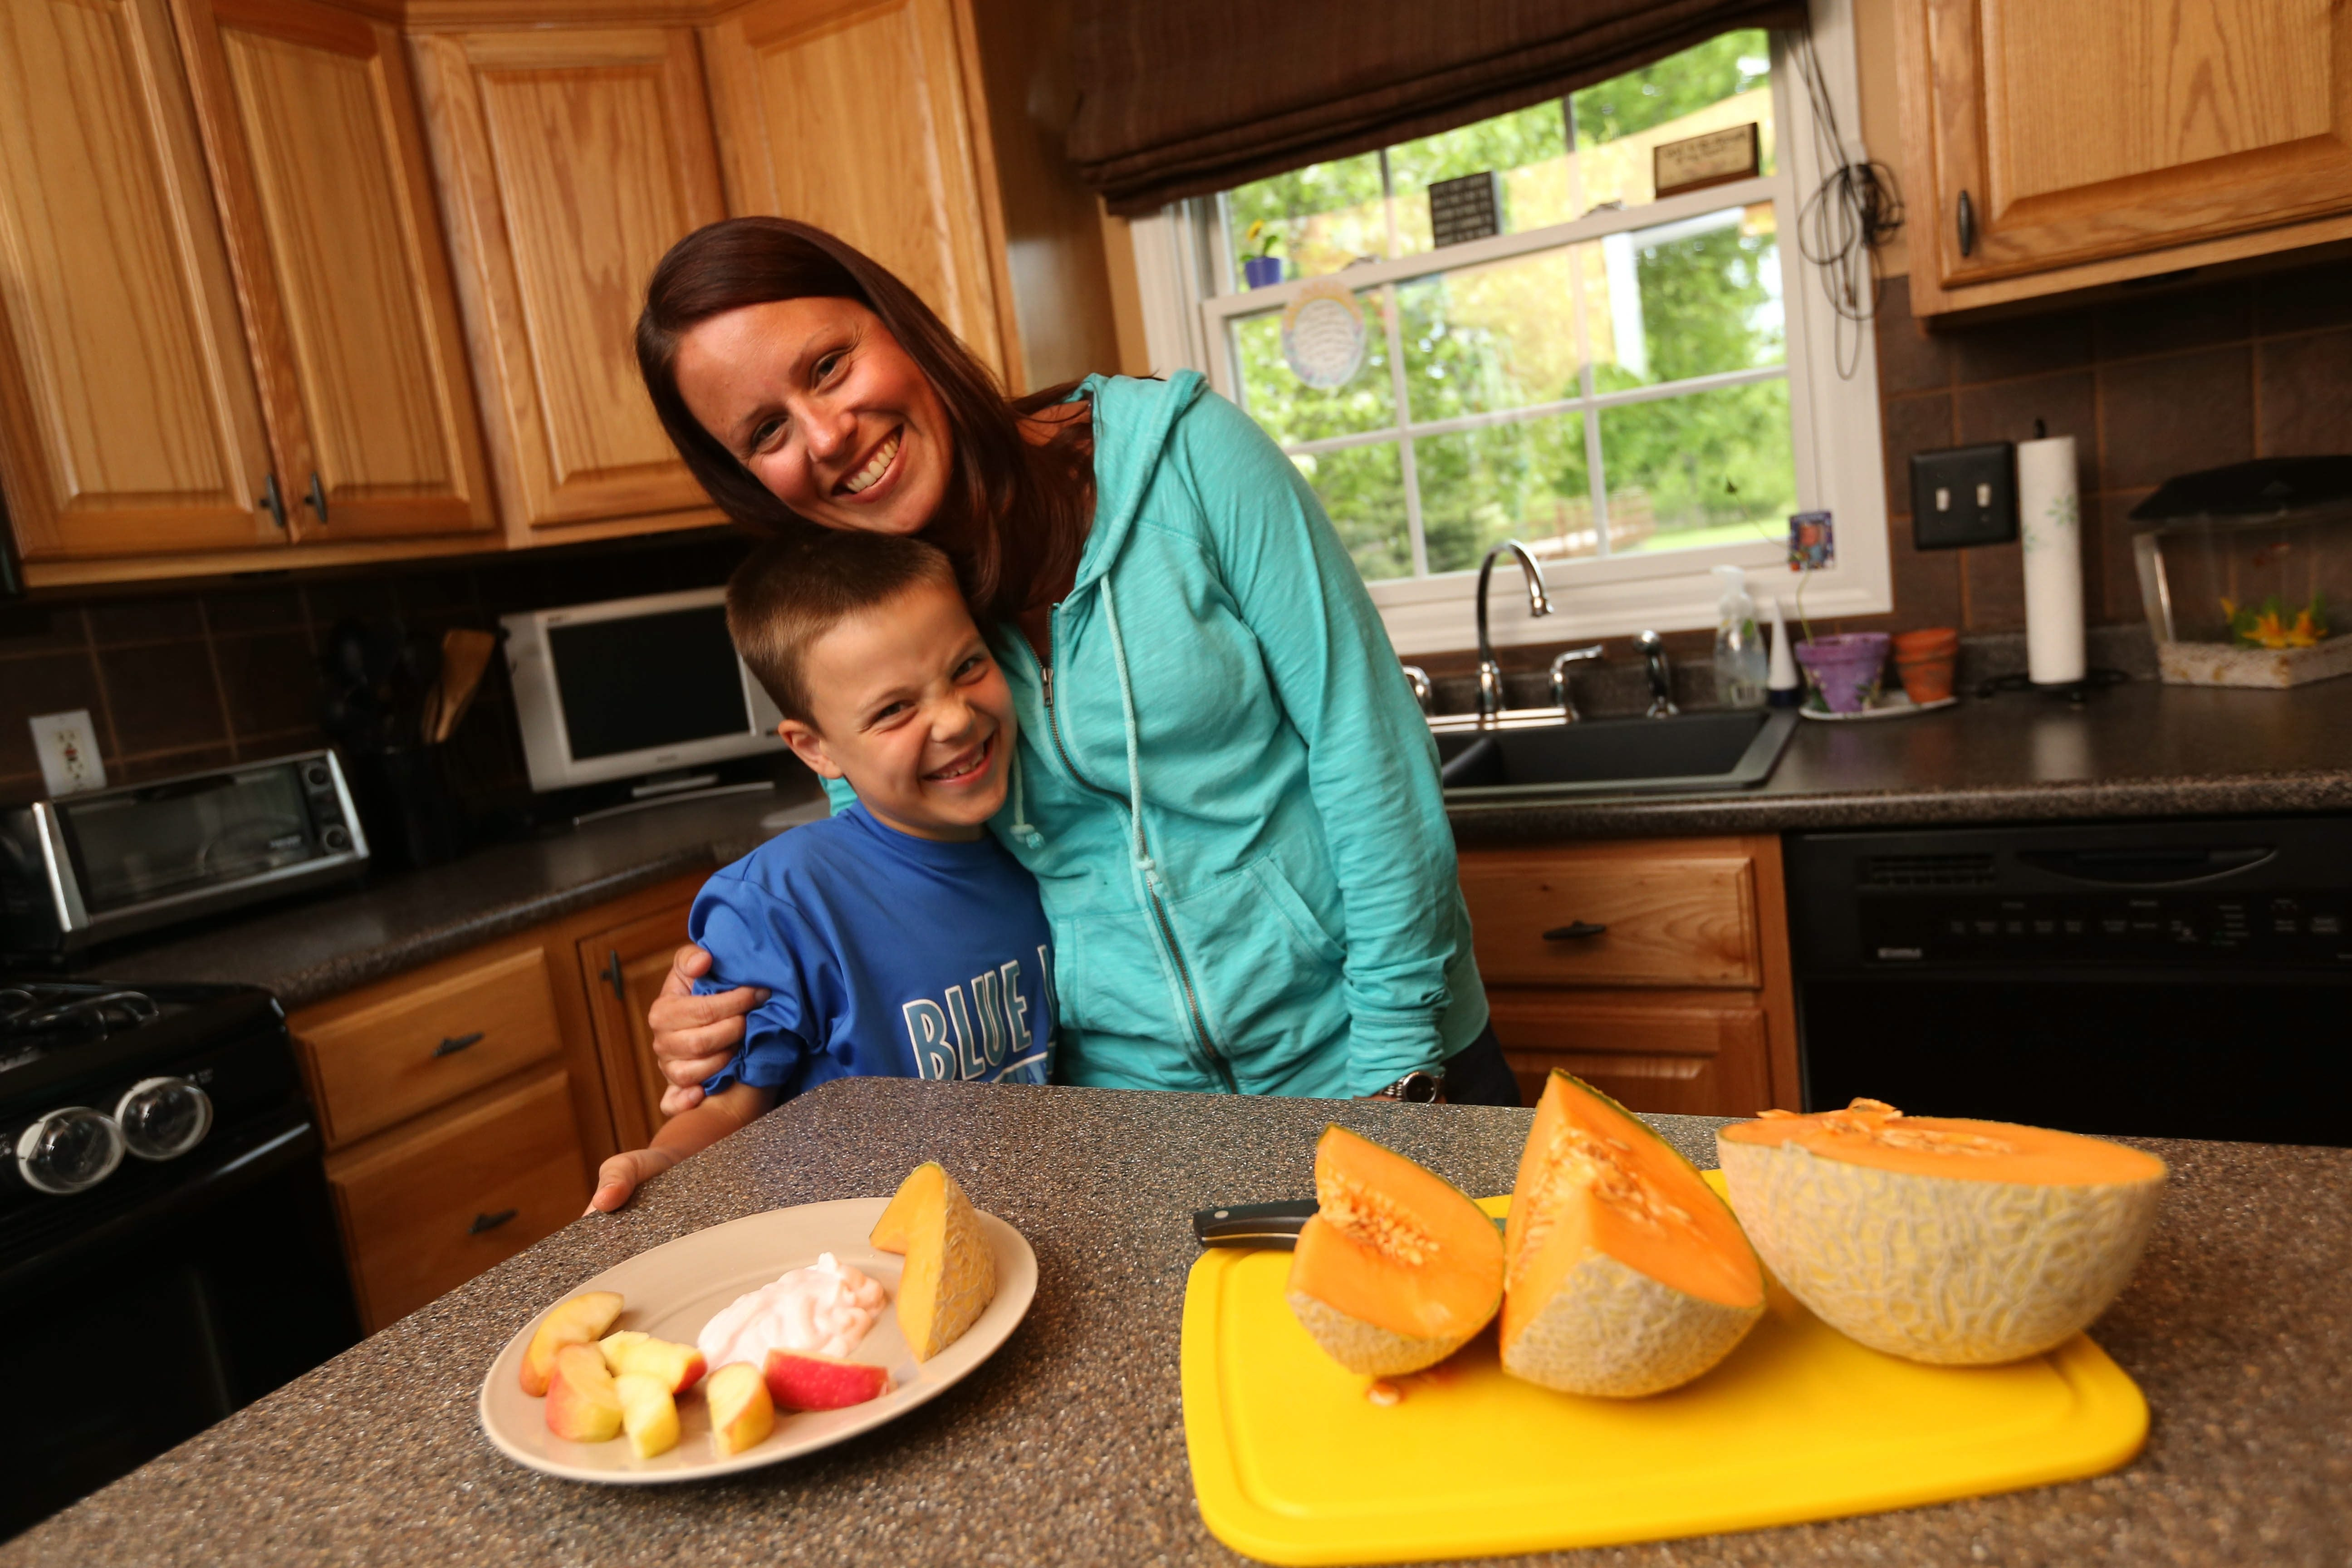 """Until a serious food allergy hits your family and you have to live with it every day – until you have to reconstruct your life – you don't know the impact it can have."" – Nurse practitioner Kelly Naab of Clarence, with her son Cooper, 7, who has a life-threatening peanut allergy"